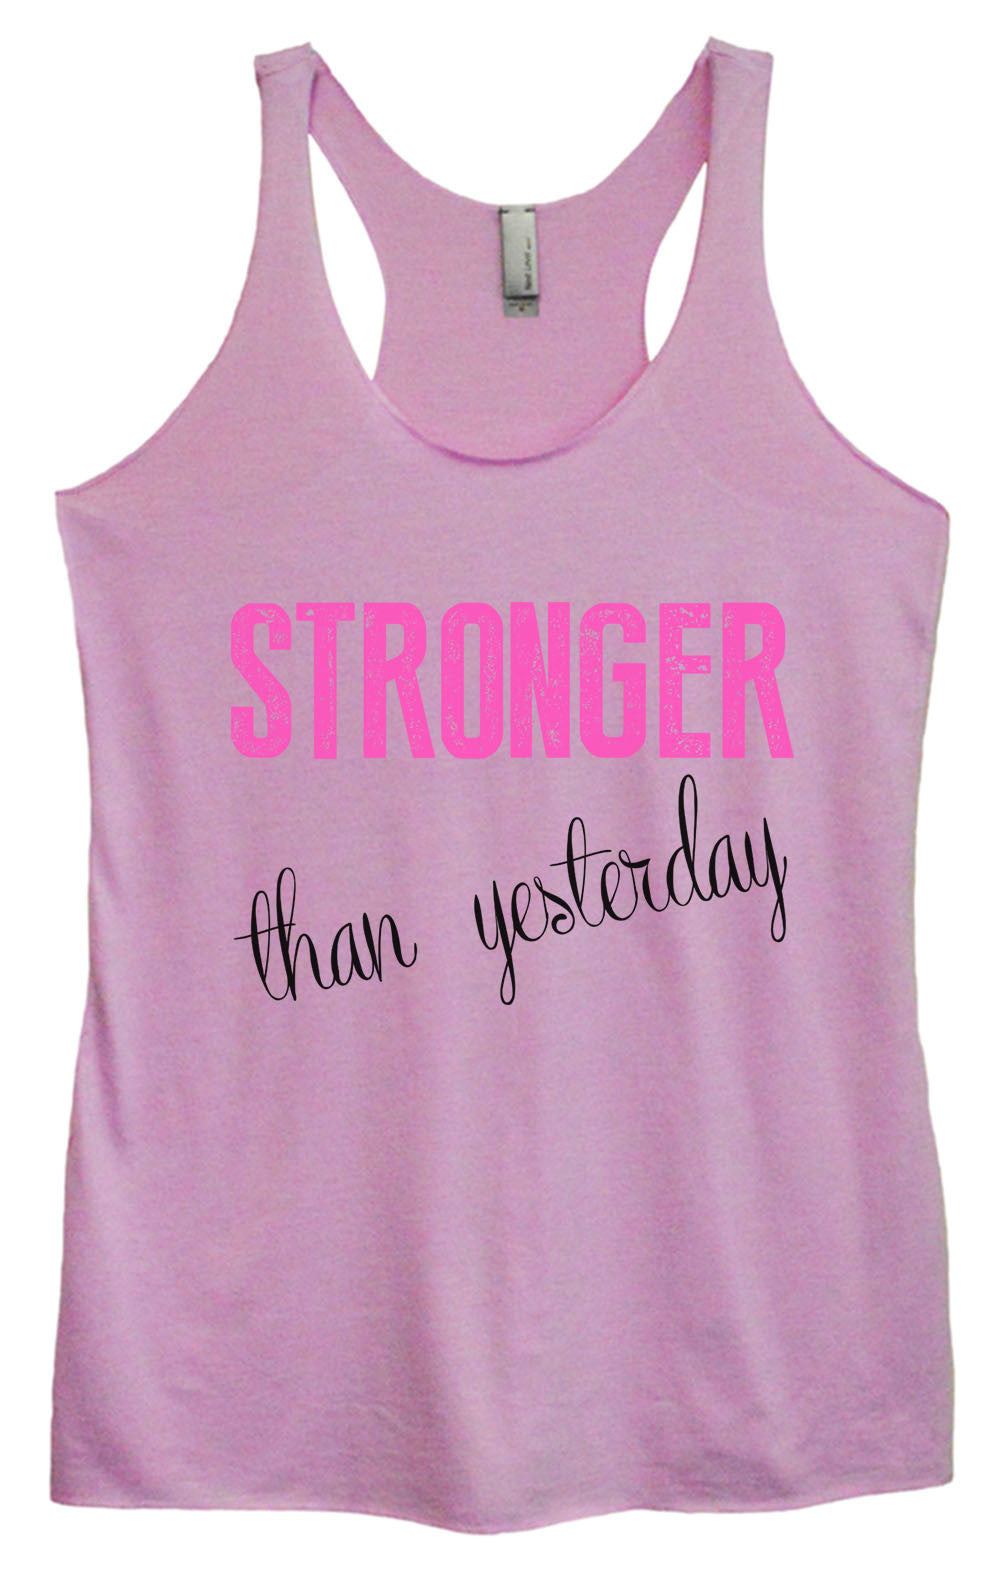 Womens Fashion Triblend Tank Top - Stronger Than Yesterday - Tri-768 - Funny Shirts Tank Tops Burnouts and Triblends  - 4